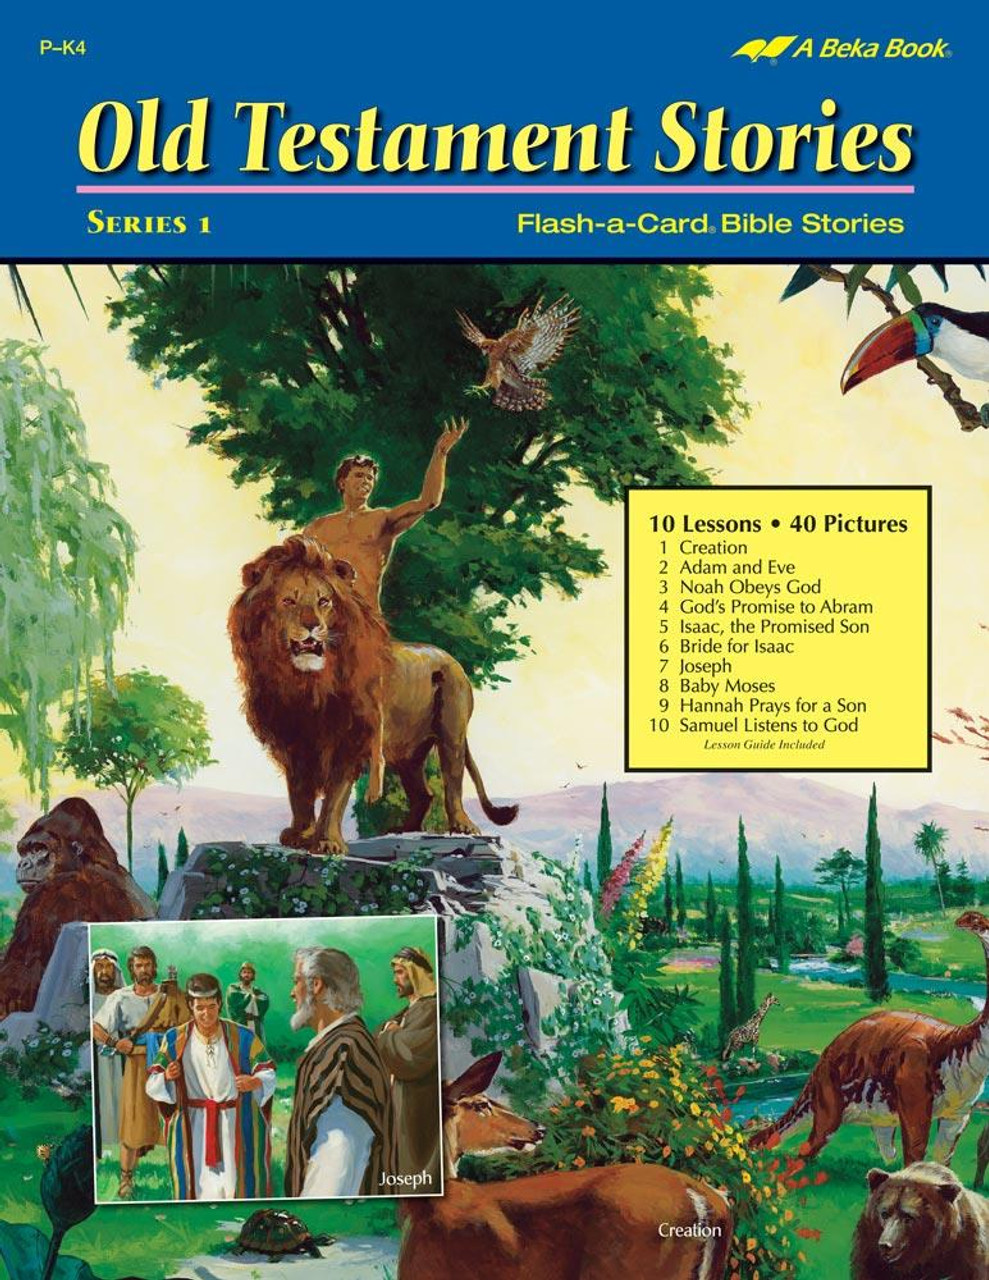 Old Testament Stories 1 (8.5X11)